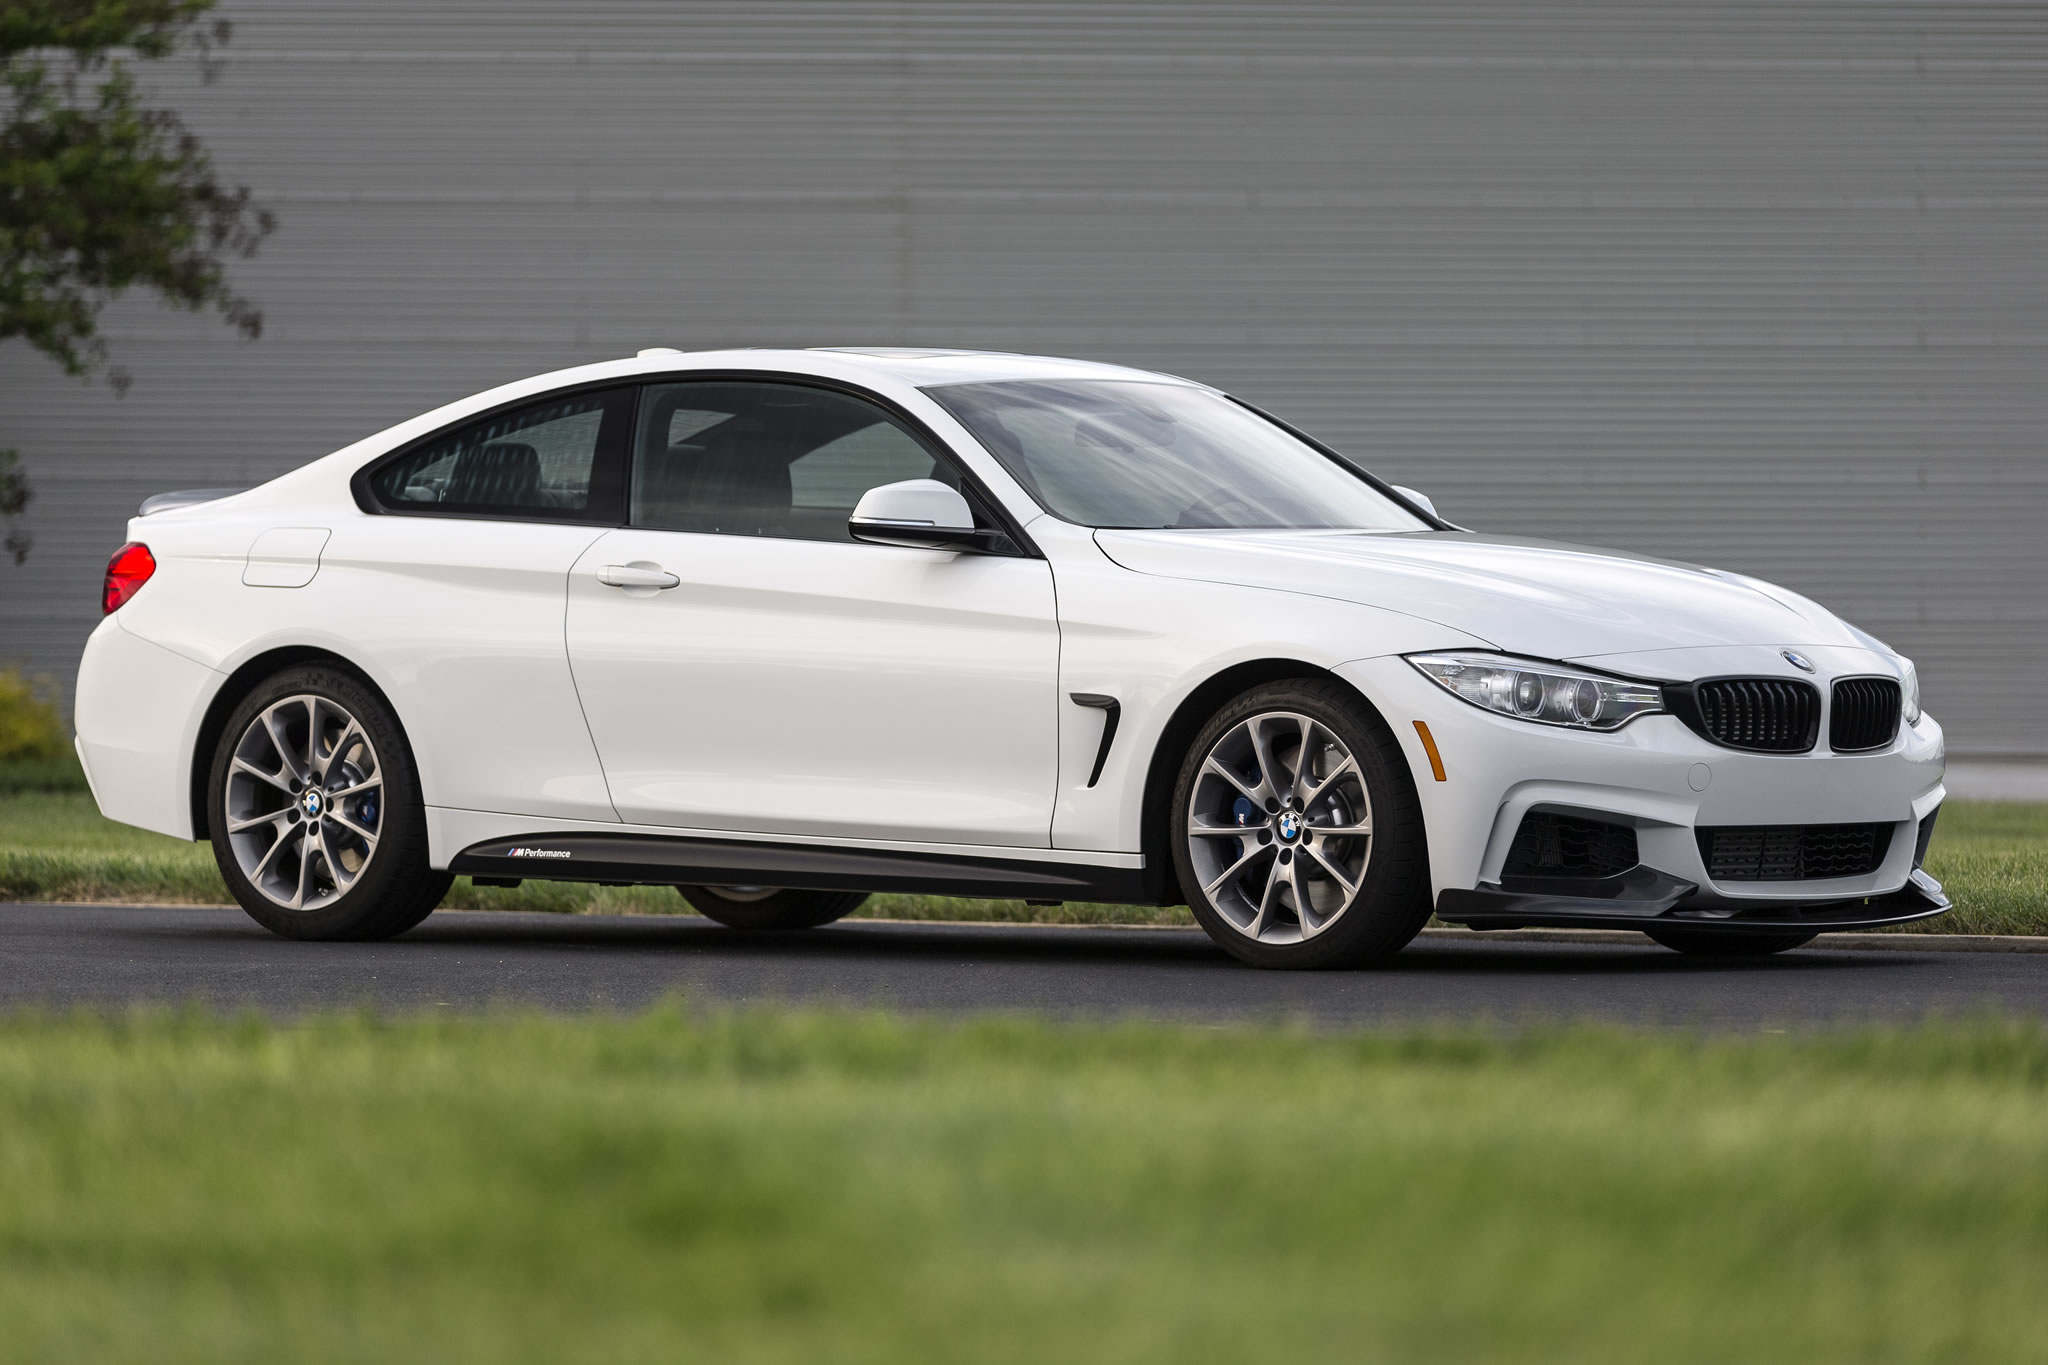 2016 BMW 435i ZHP Coupe - front photo, Alpine White paint ...